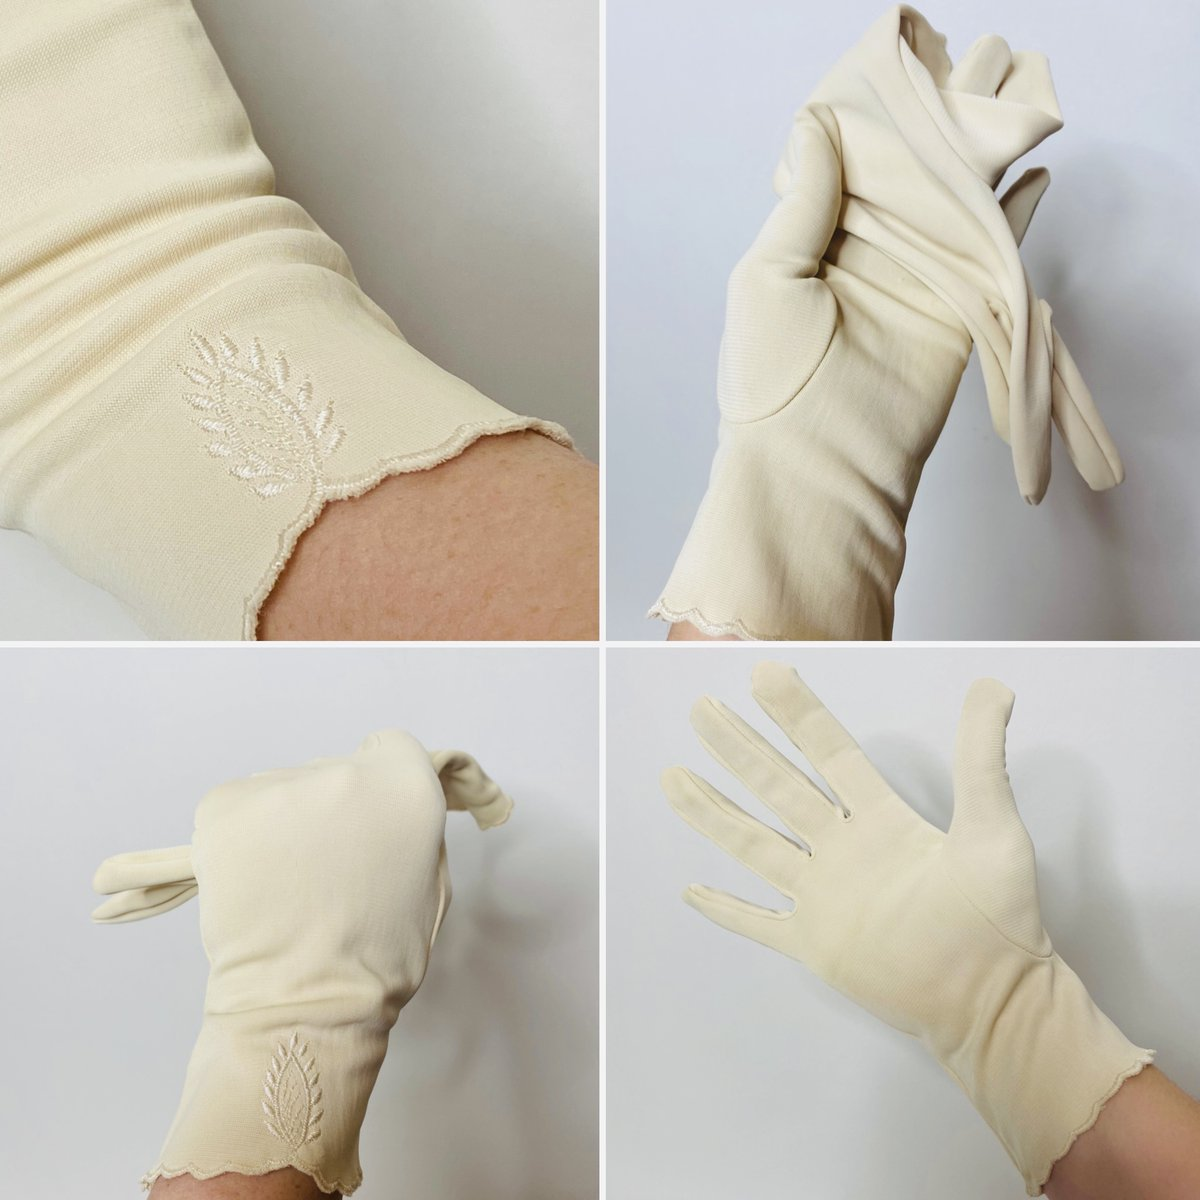 Sweet cream vintage gloves,  featuring scalloped edges and a pretty embroidered design, size 7.5 £8 #georginasvintage #etsyseller #etsyshop #creamgloves #50sgloves #50sfashion #embroideredgloves #elegantgloves #PPR